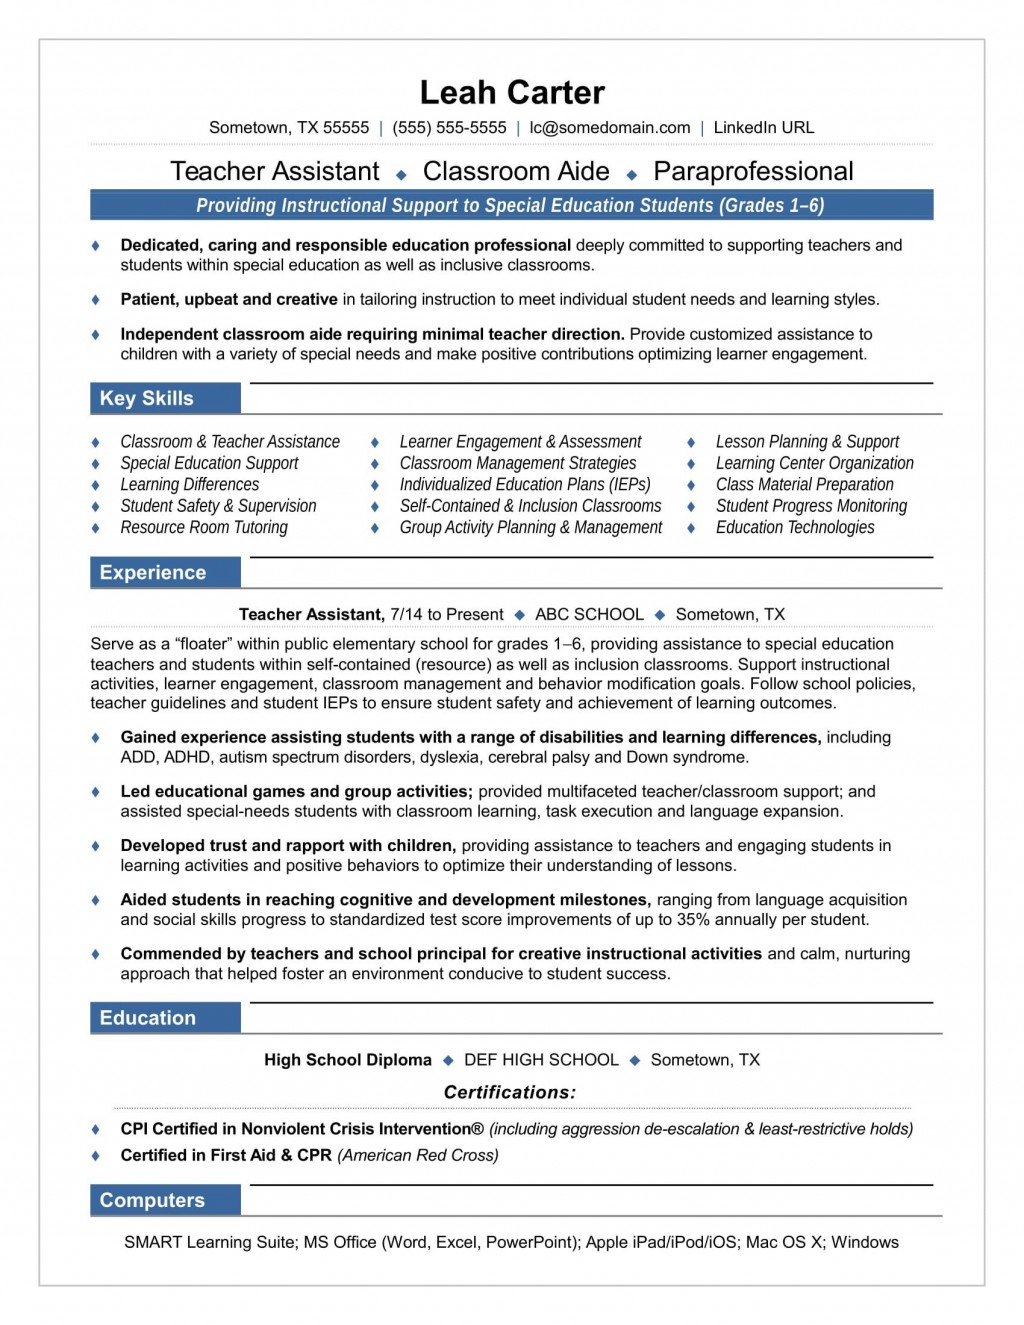 008 Fantastic Resume Example For Teaching Job High Definition  Jobs Format Sample Curriculum Vitae Profession In IndiaLarge